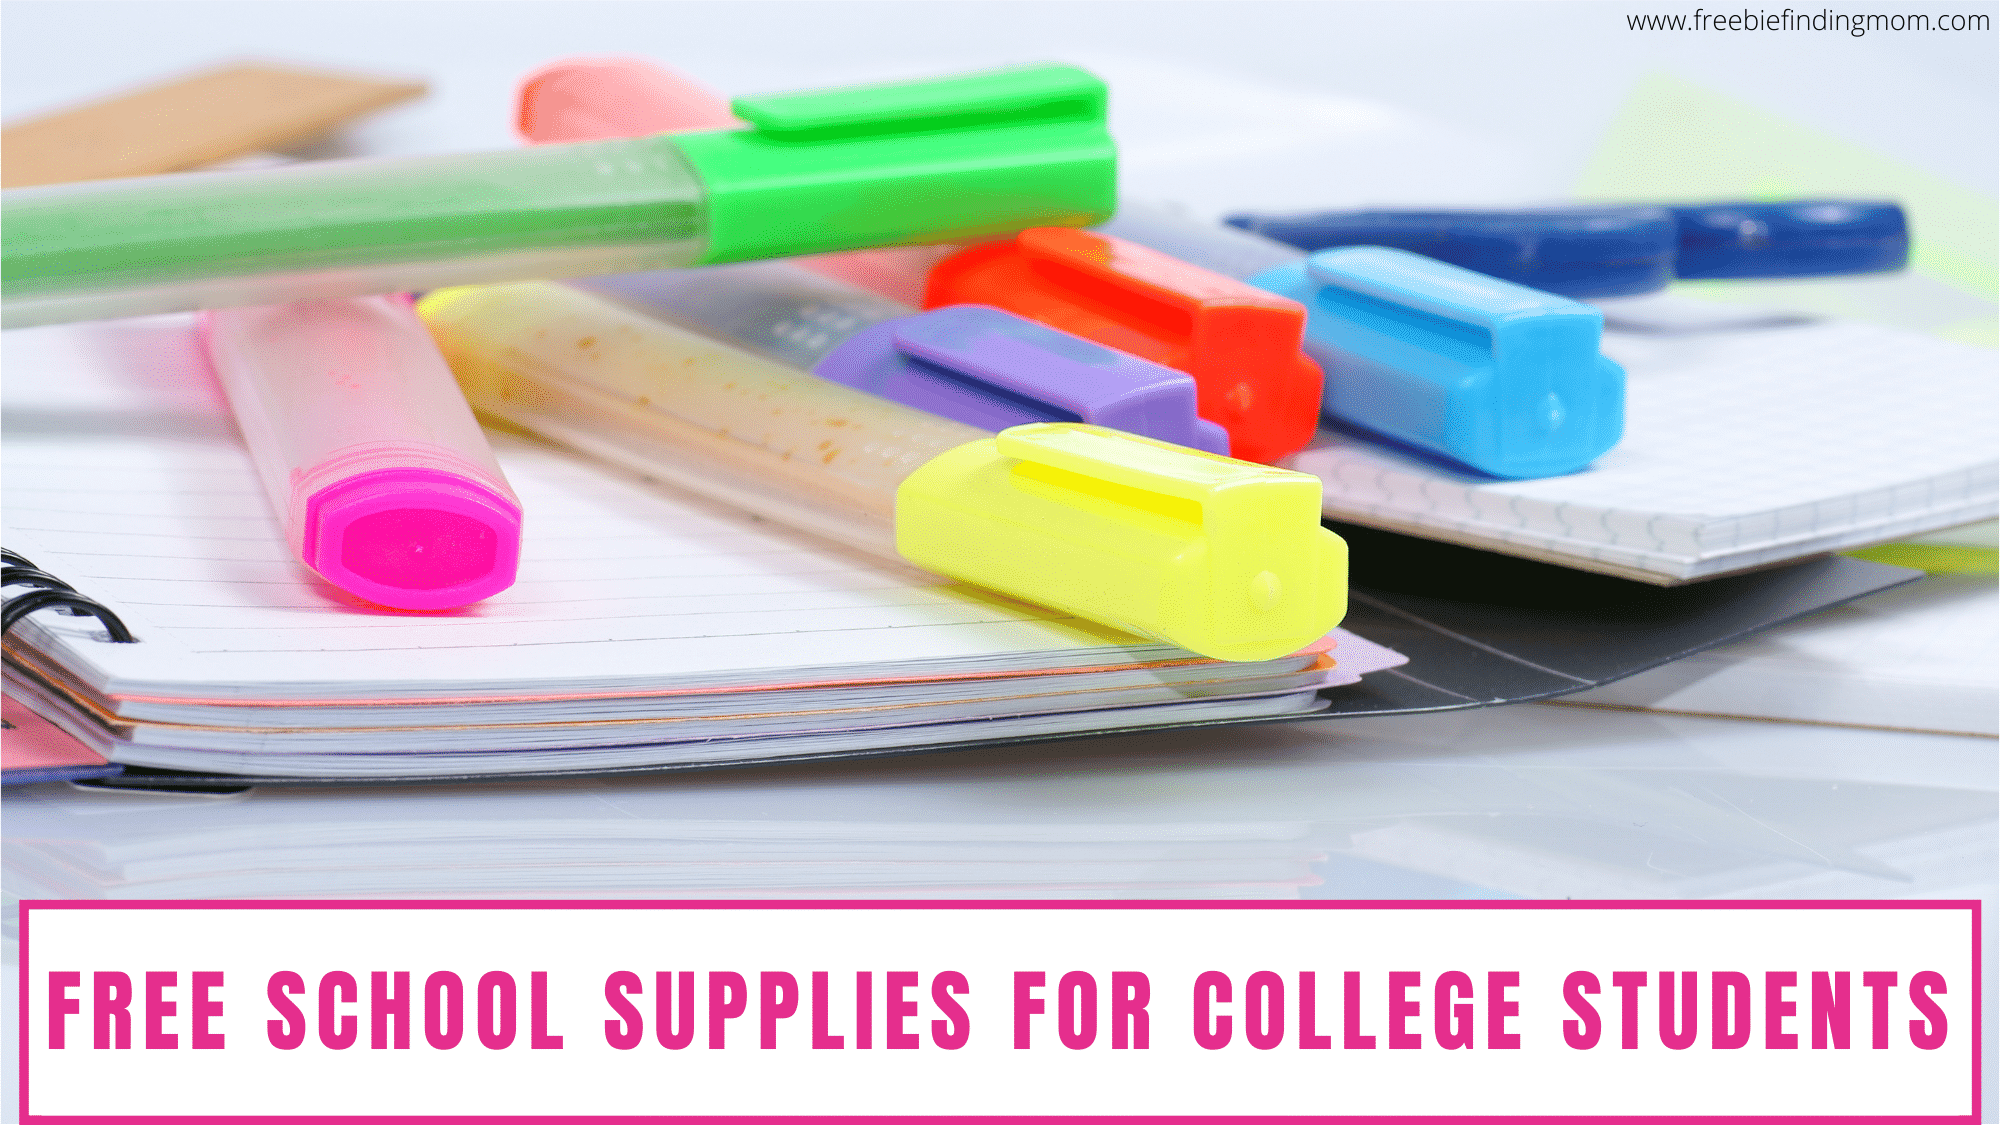 Did you know you can snag free school supplies for college students? Here are tips on how to save money on school supplies.